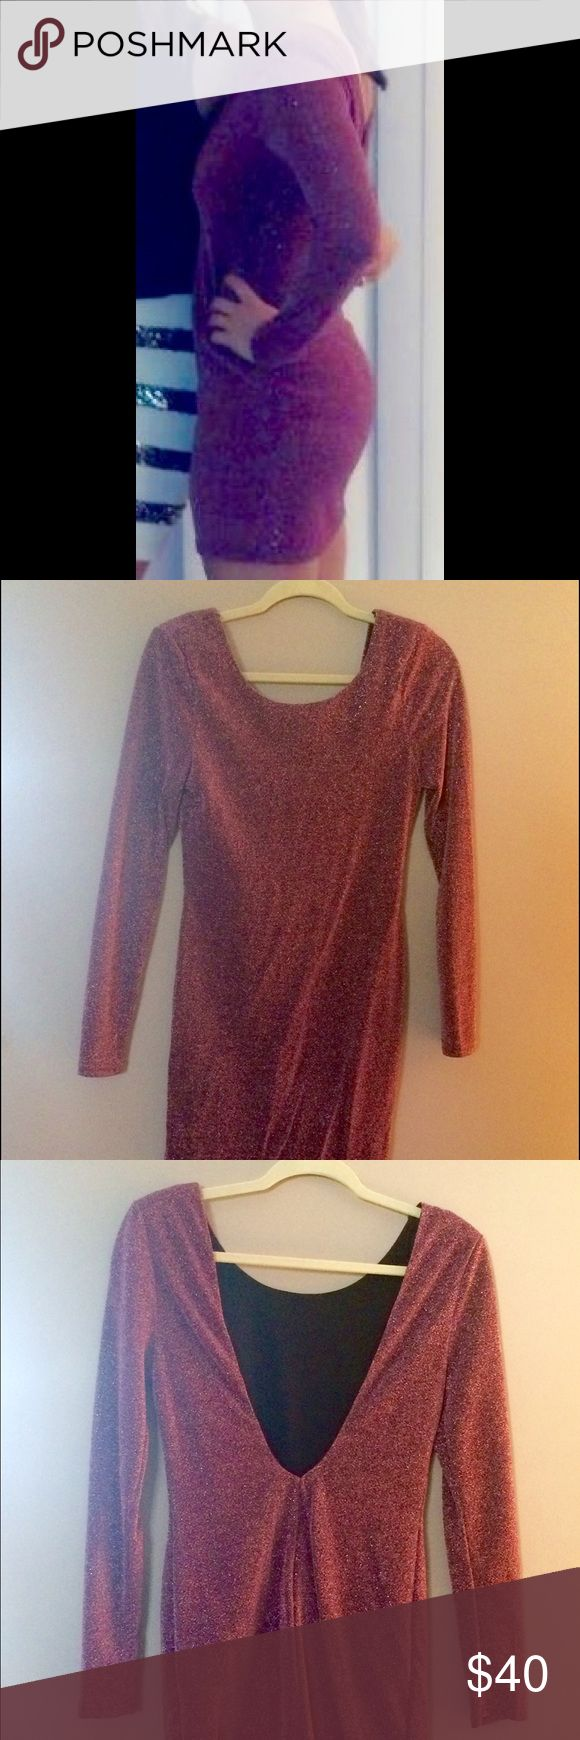 Open back pink sparkly dress Perfect for New Years! Worn once. Has small shoulder pads. Very form fitting! Lush Dresses Long Sleeve